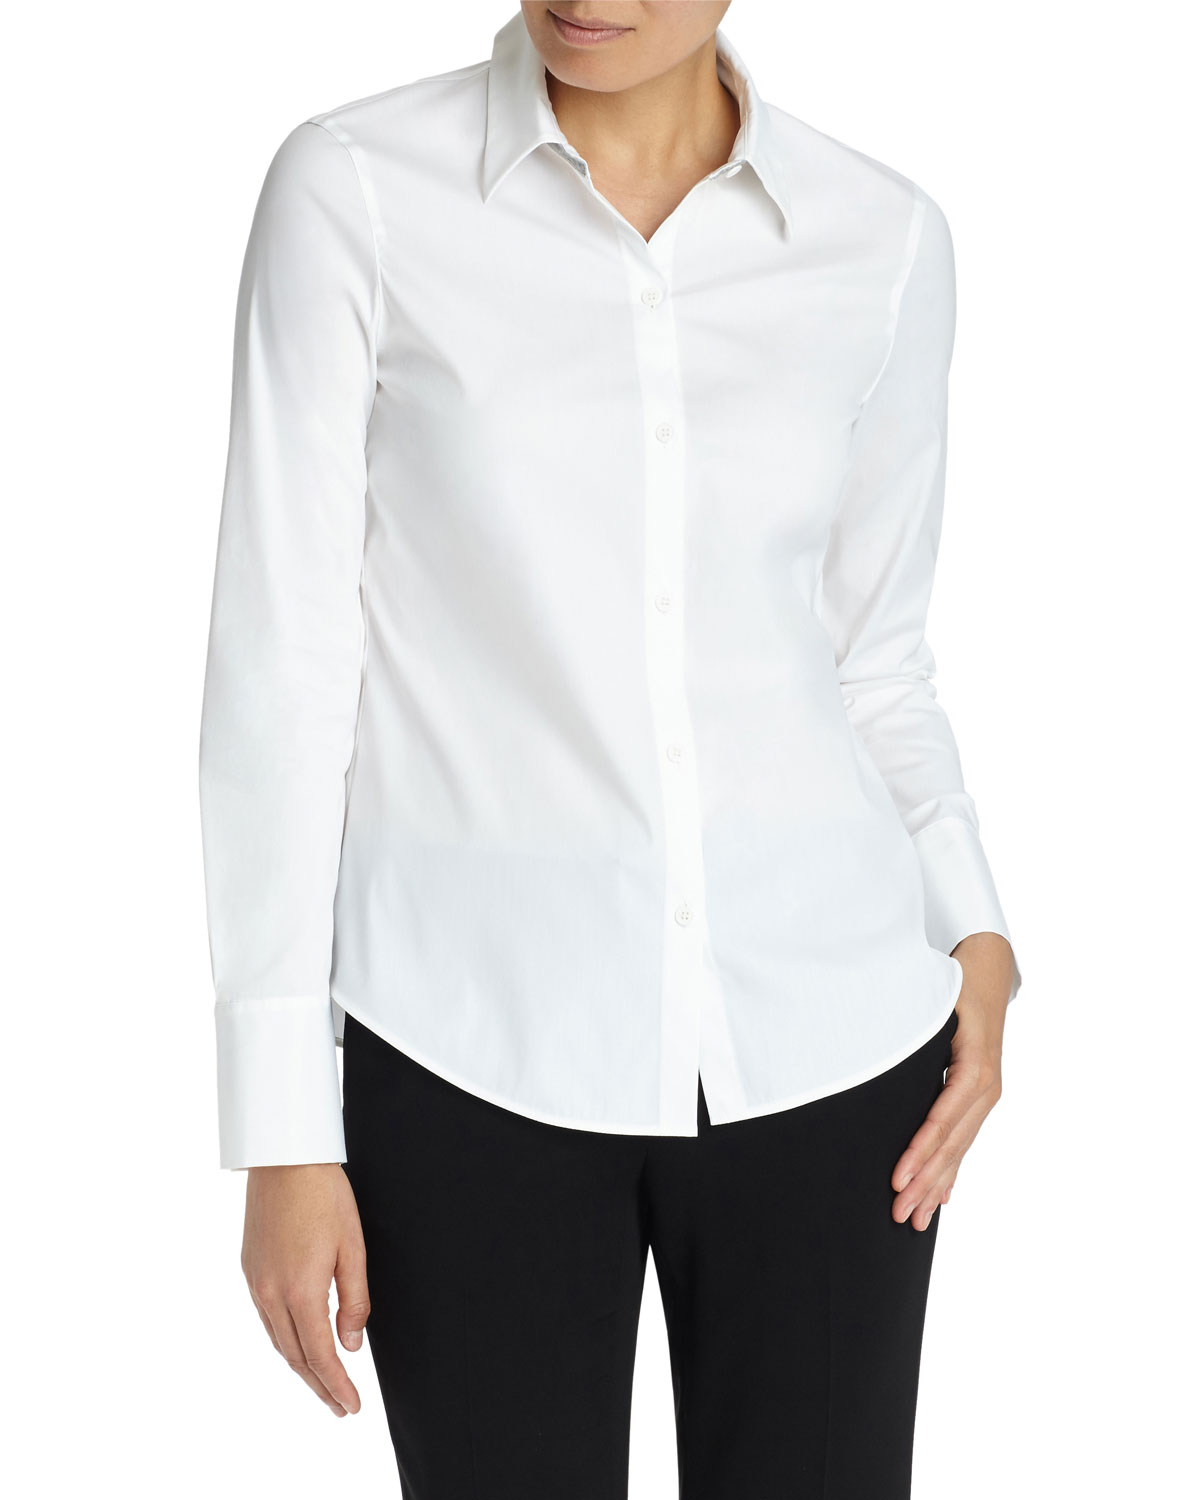 Linley Button-Down Blouse With Chain Trim in White